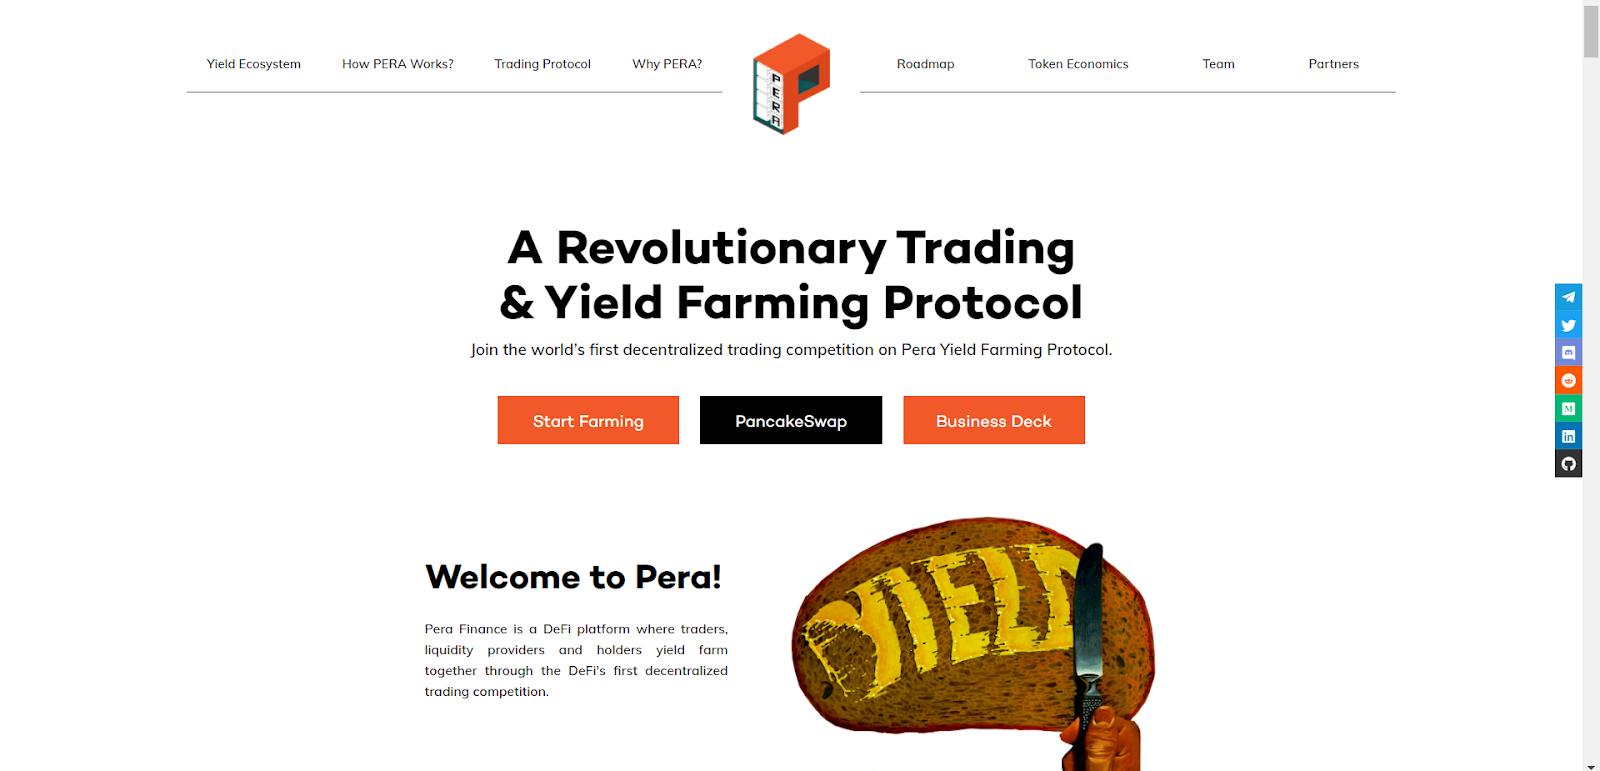 Trader-oriented Yield Farming Protocol Pera Finance announces listing on Pancakeswap and Gate.io